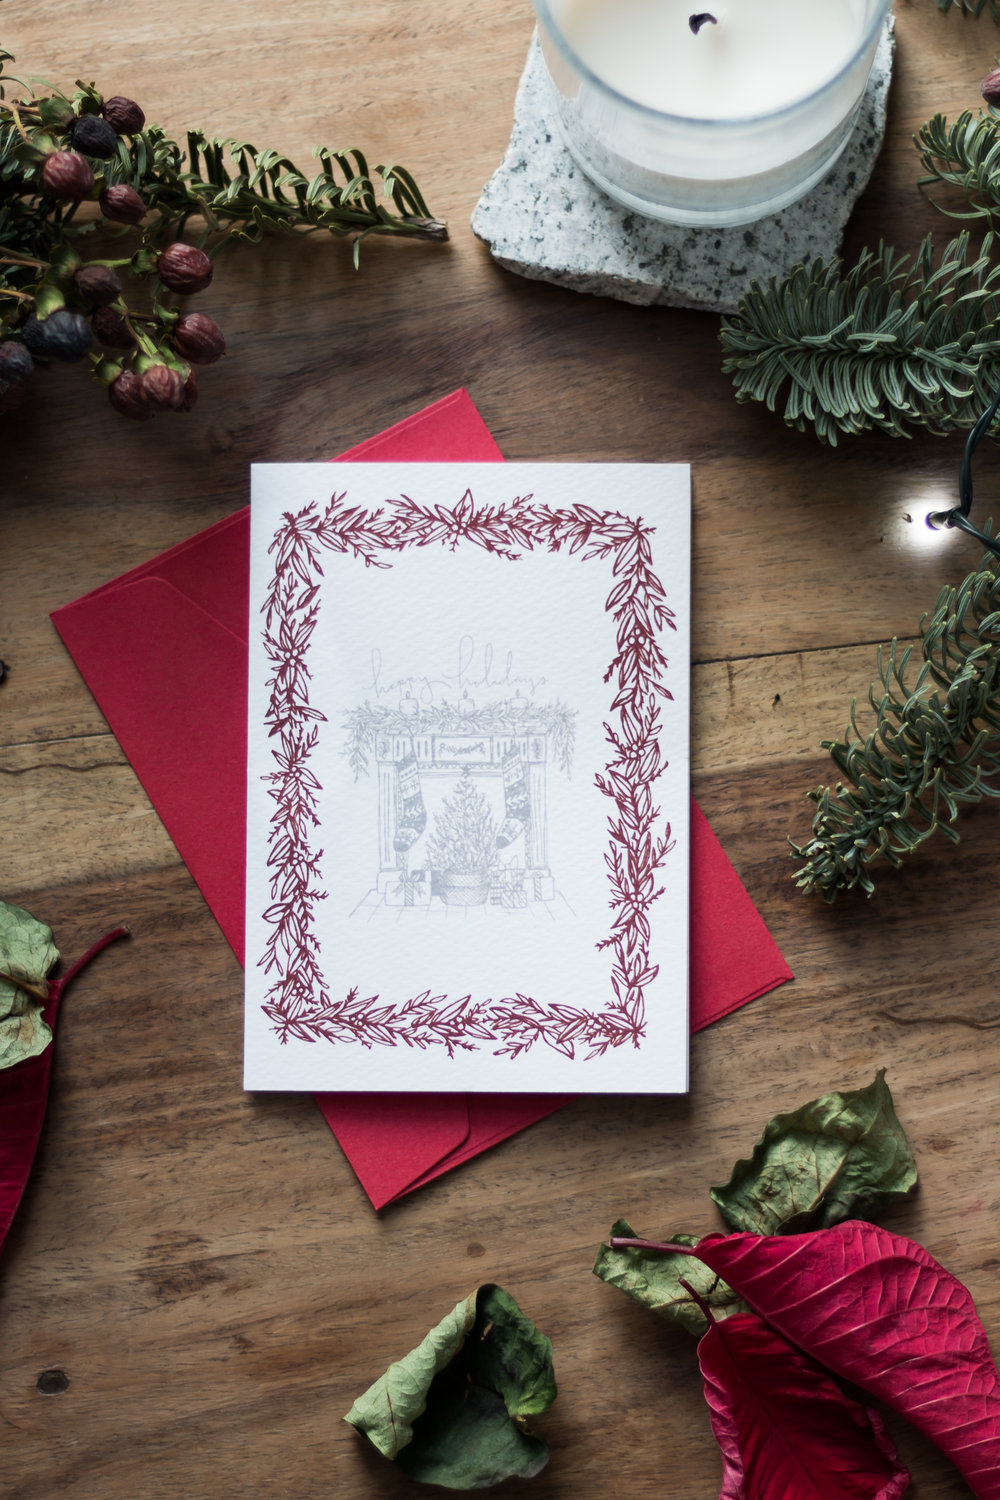 Sending Love With Our 2016 Holiday Cards | Sea of Atlas